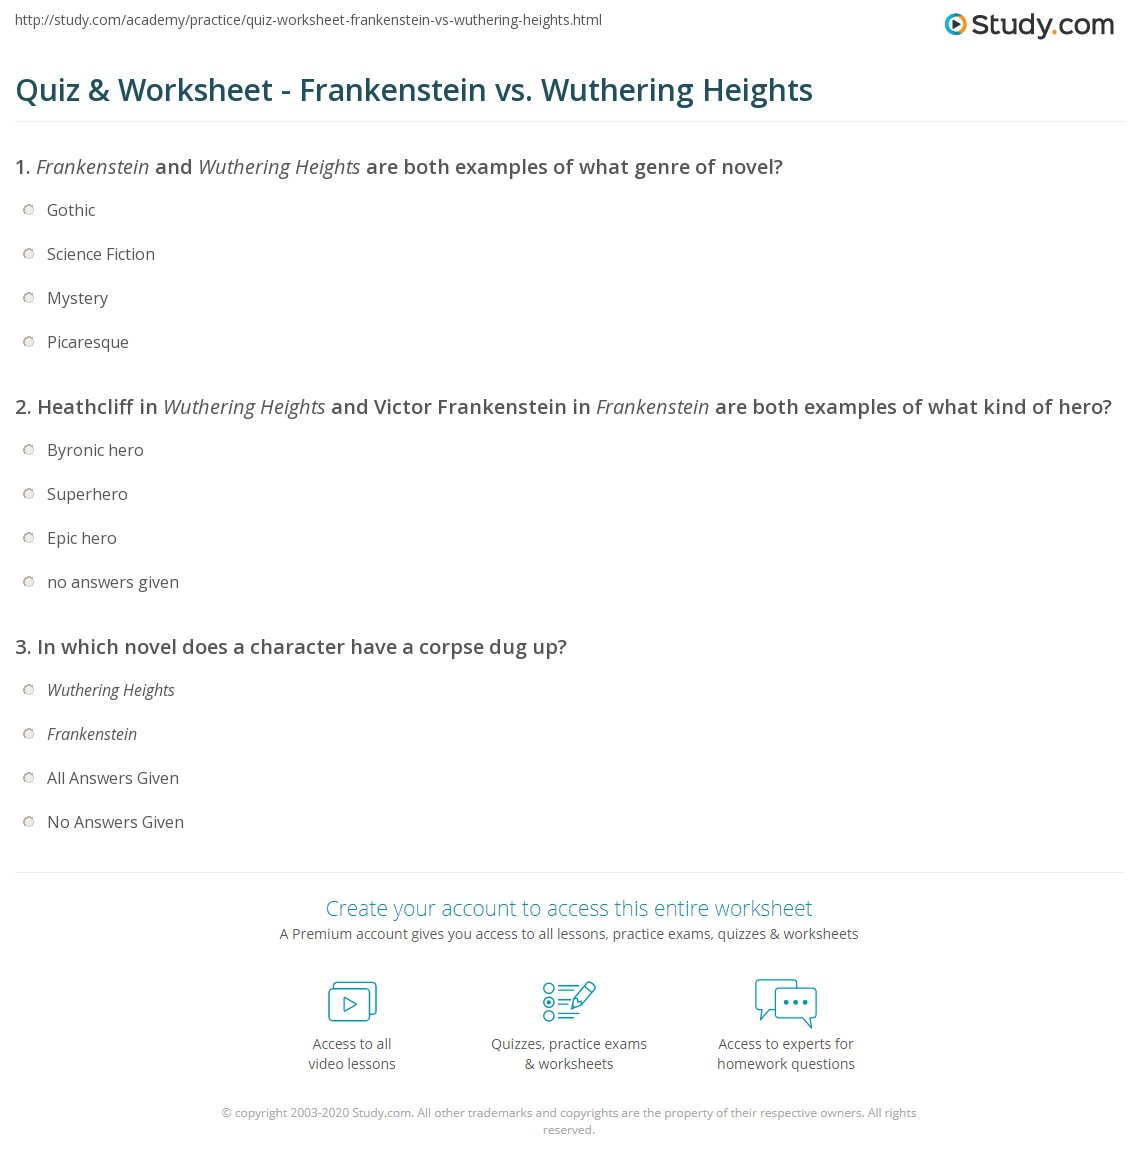 an introduction to comparison of setting and mood in frankenstein and wuthering heights Open document below is an essay on wuthering heights vs frankenstein from anti essays, your source for research papers, essays, and term paper examples.